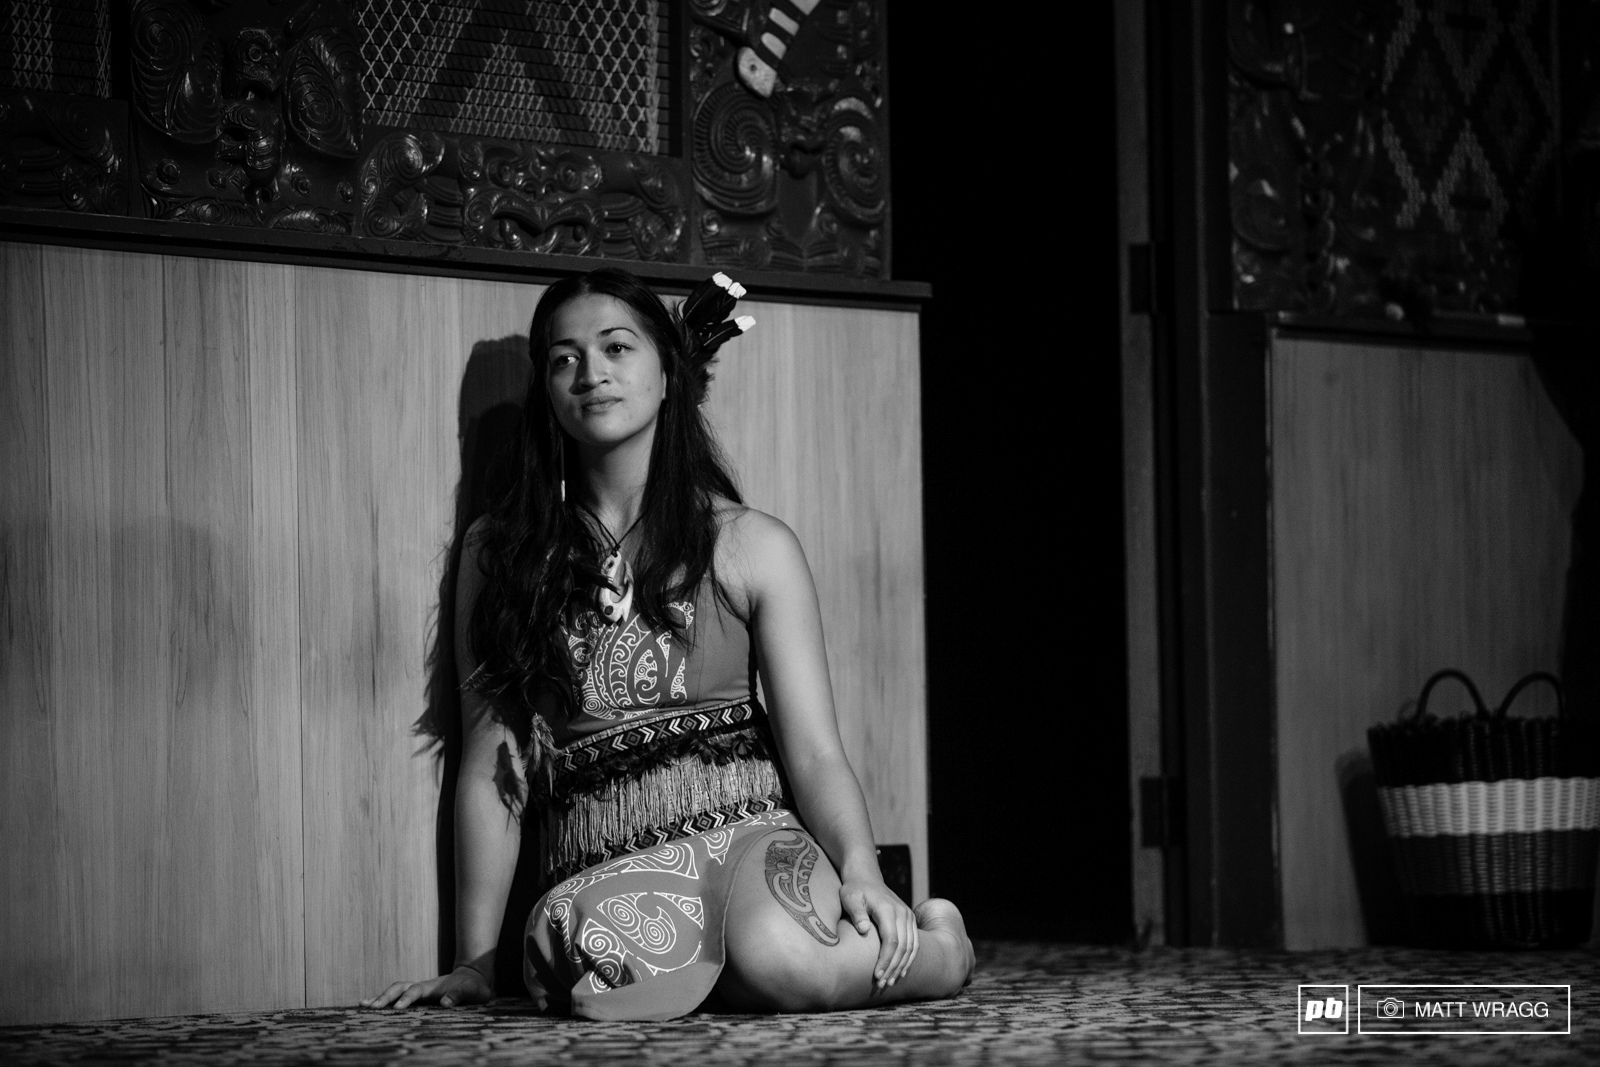 A performer rests between ats during opening ceremony at Te Puia. Maori dance during opening ceremony at Te Puia. EWS 1 2015 Rotorua New Zealand. Photo by Matt Wreagg.